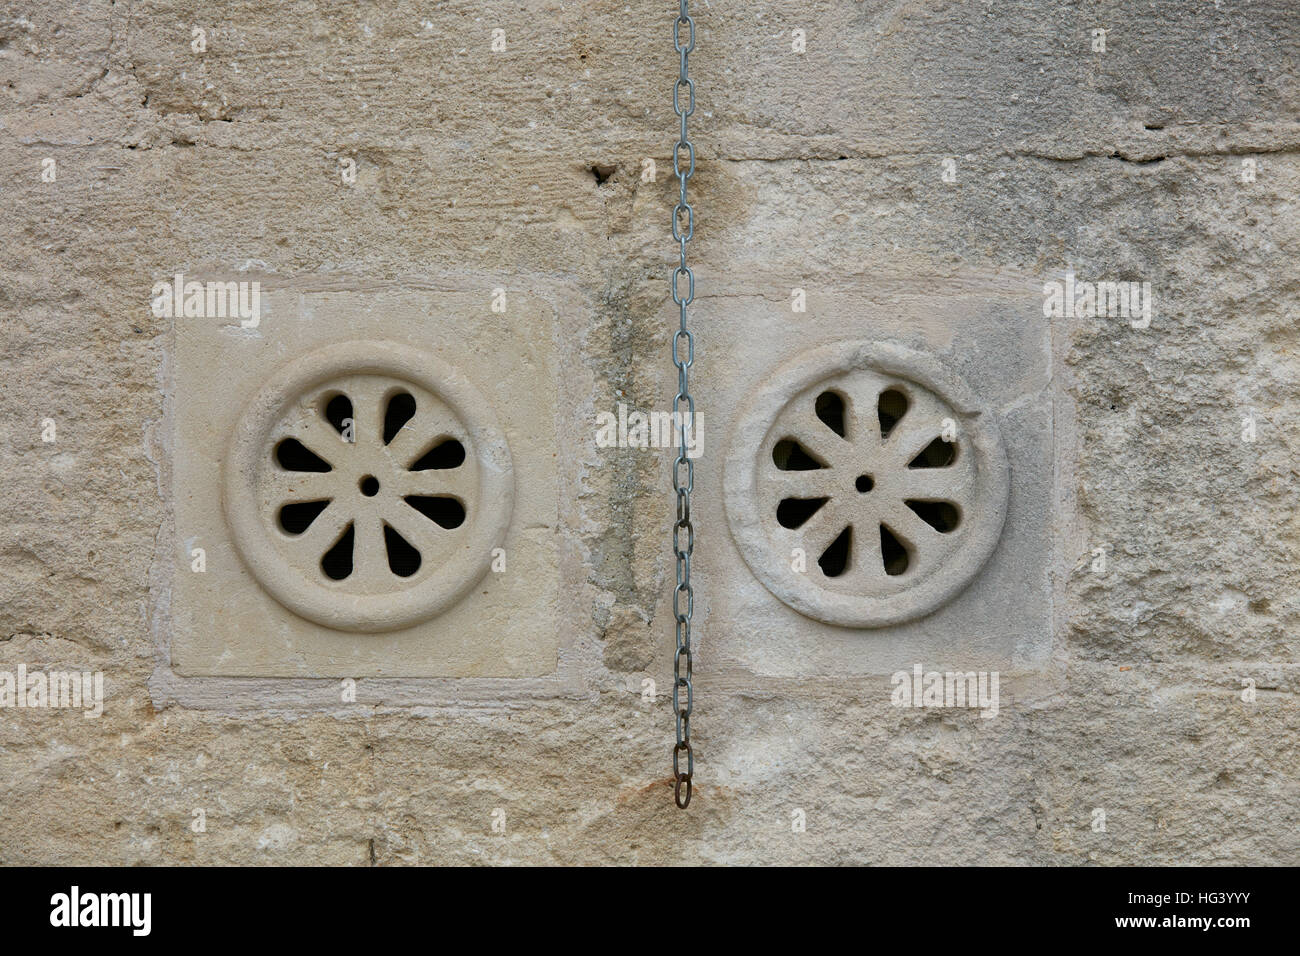 Architectural detail, Matera, Italy. Close up of a vent. - Stock Image